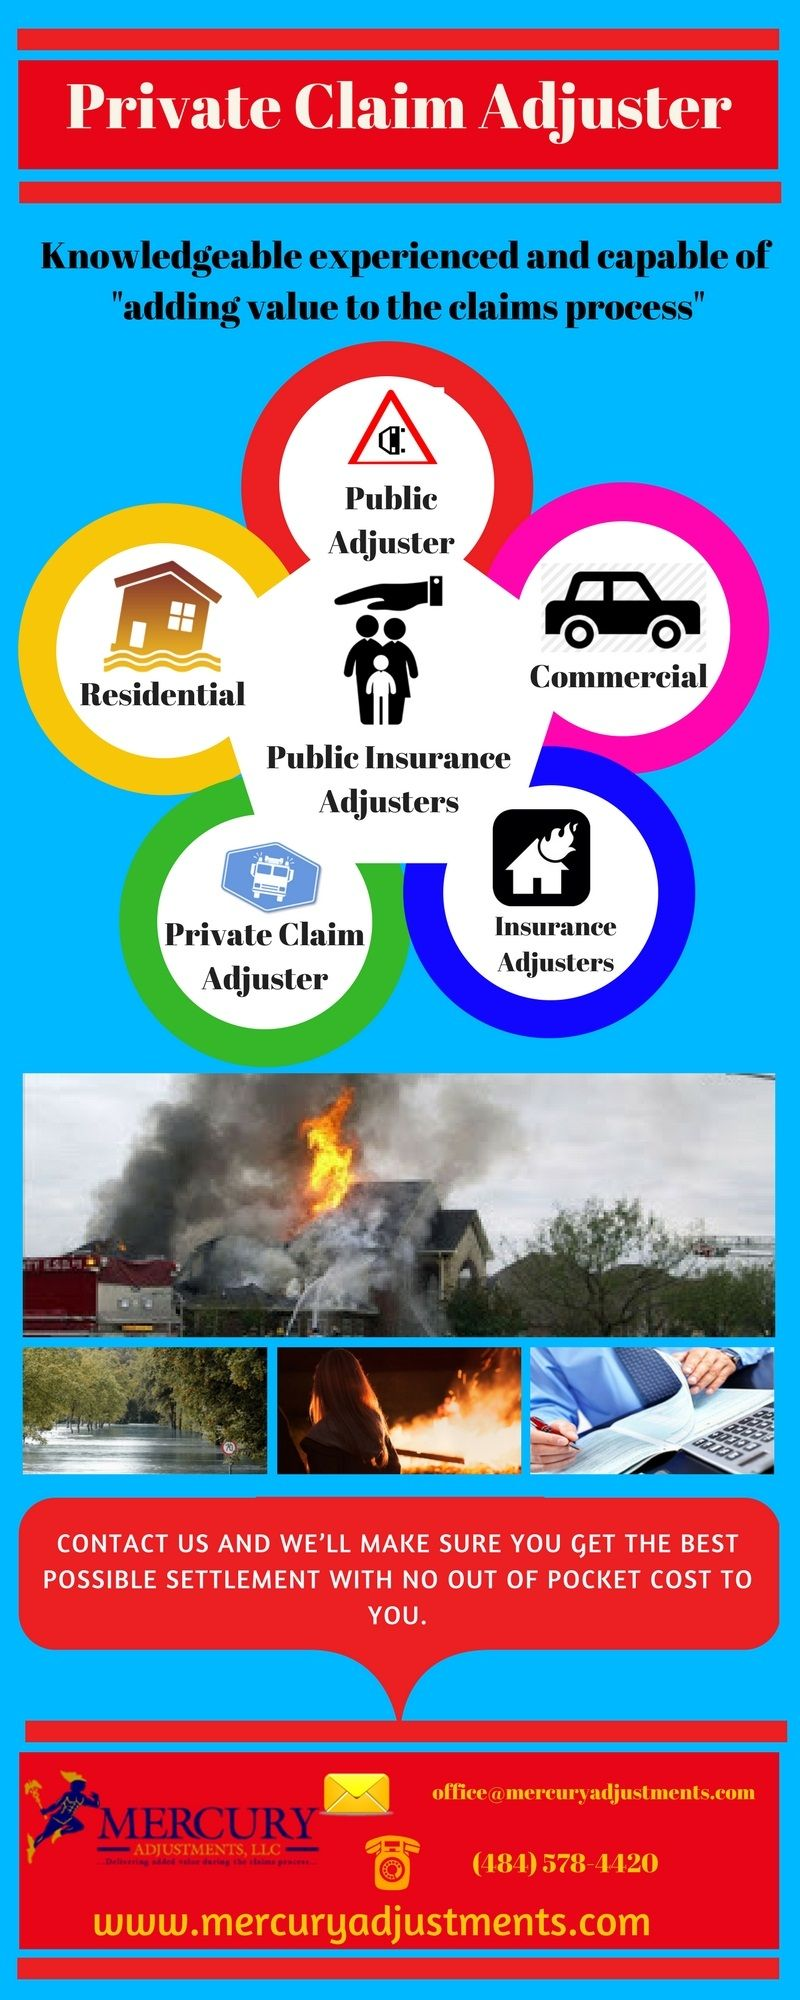 The Public Adjusting Is The Most Helpful Process In The Insurance Settlement Our Adjuster Recovers Many Types Of The Insurance Claim Flood Damage Public Life